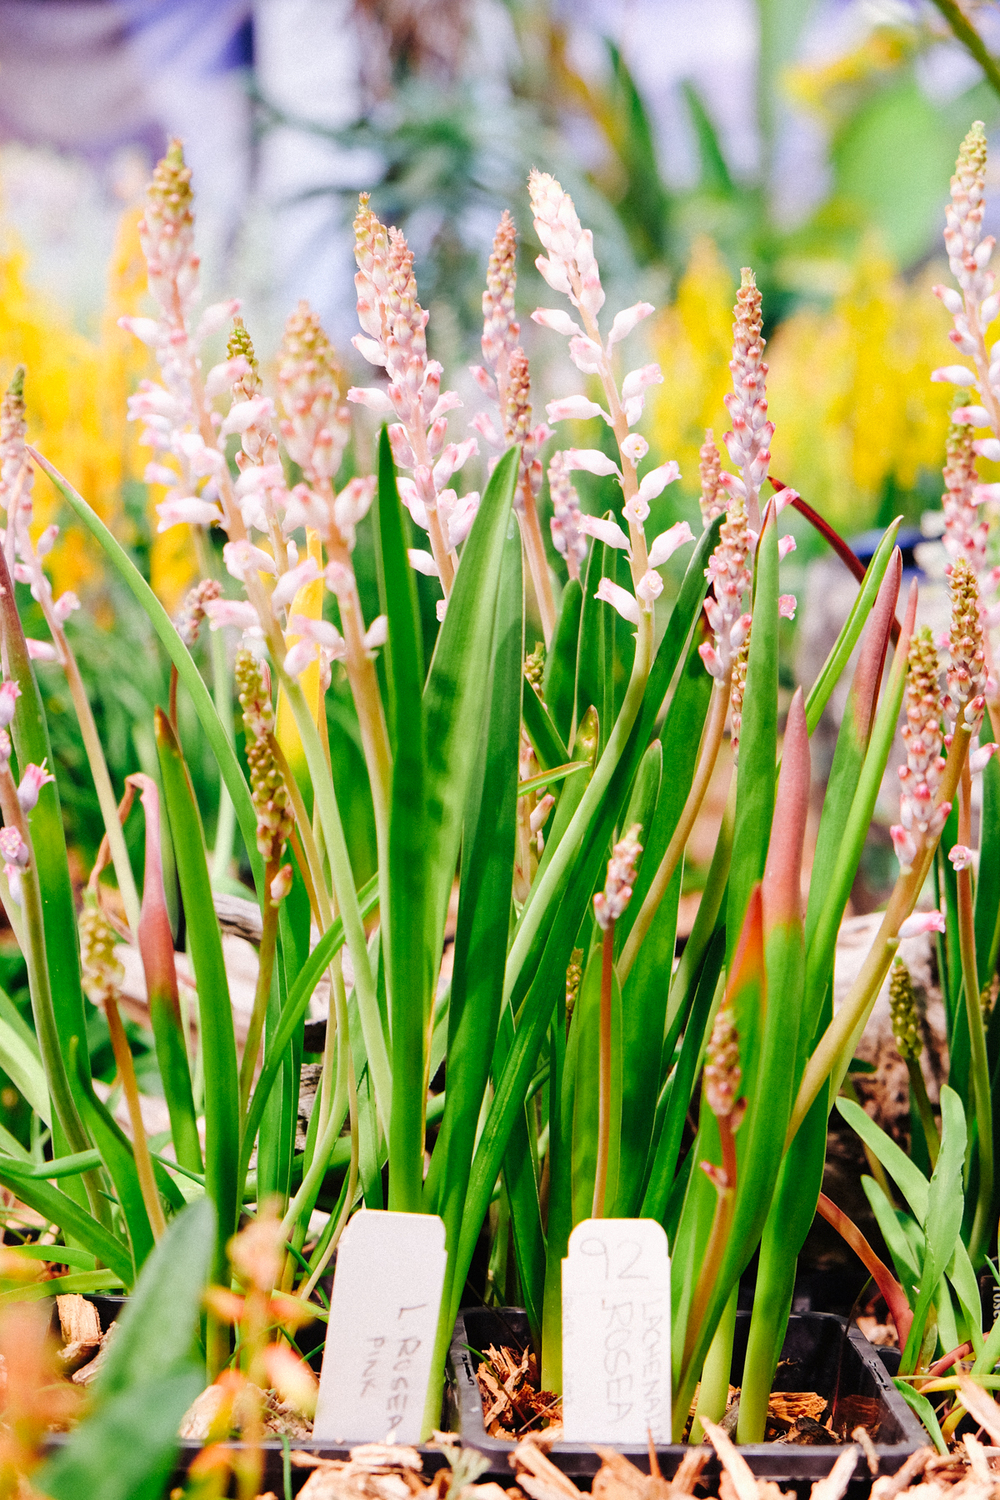 Lachenalia display at Exbury Gardens